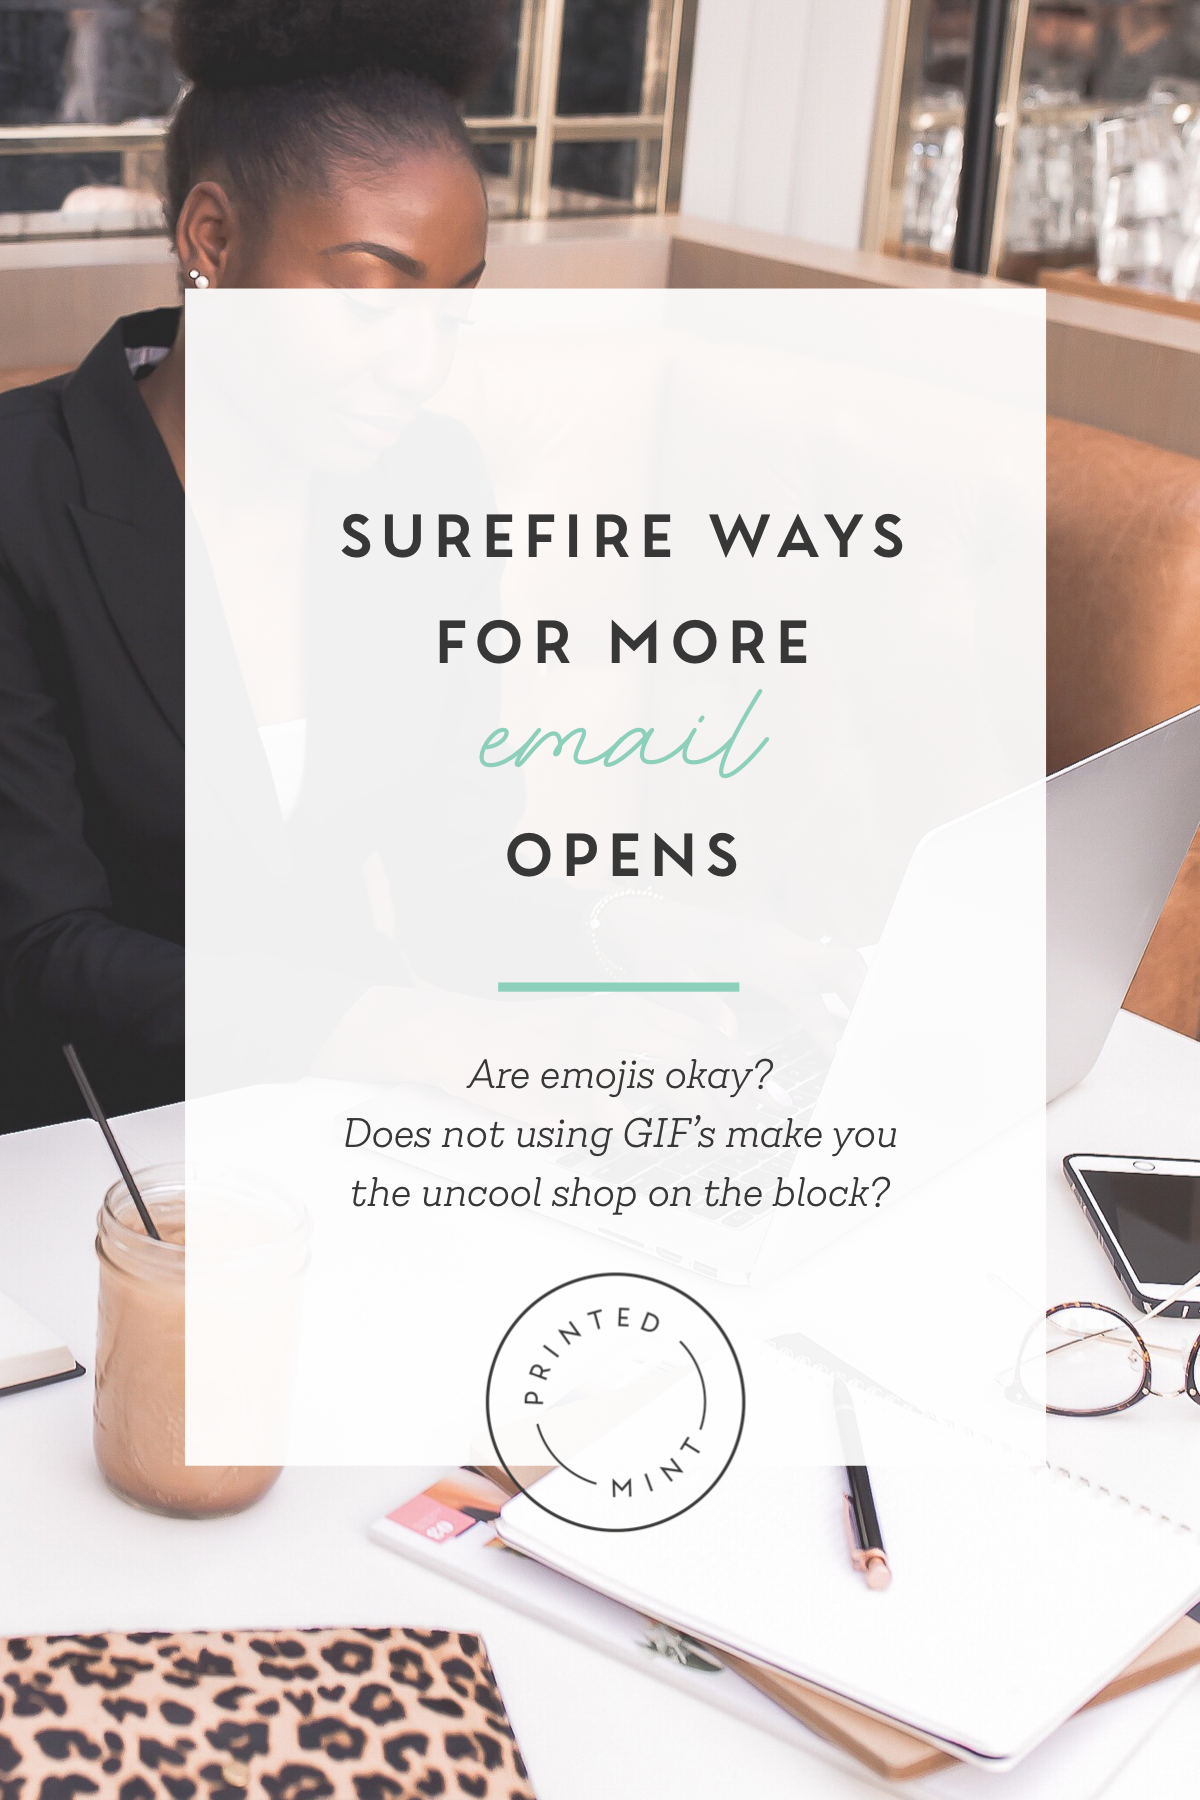 Surefire Ways for More Email Opens Business marketing